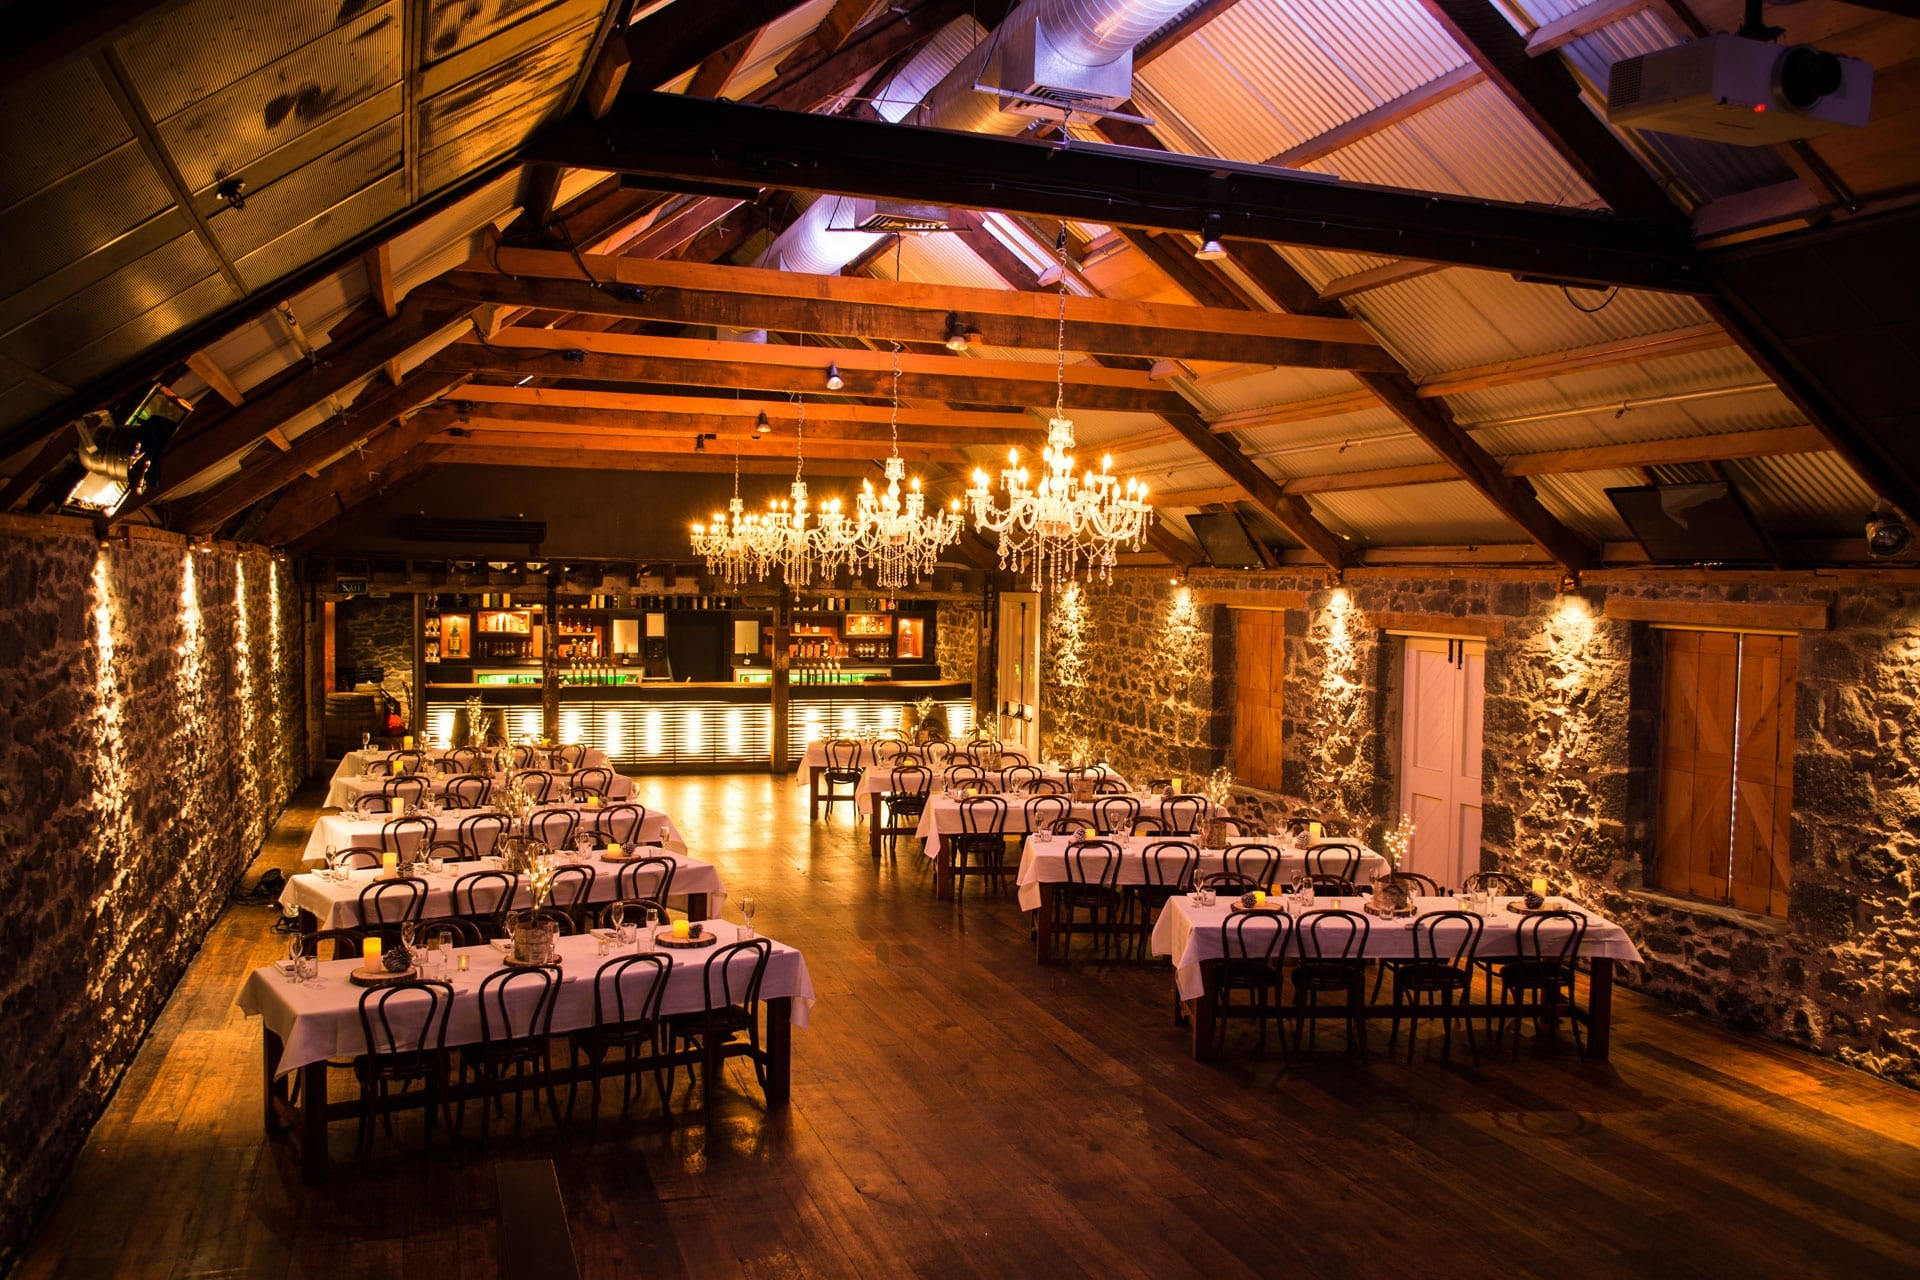 gala, dinner, venue, function, space, corporate, private, dining, banquet, event, awards, bluestone, room